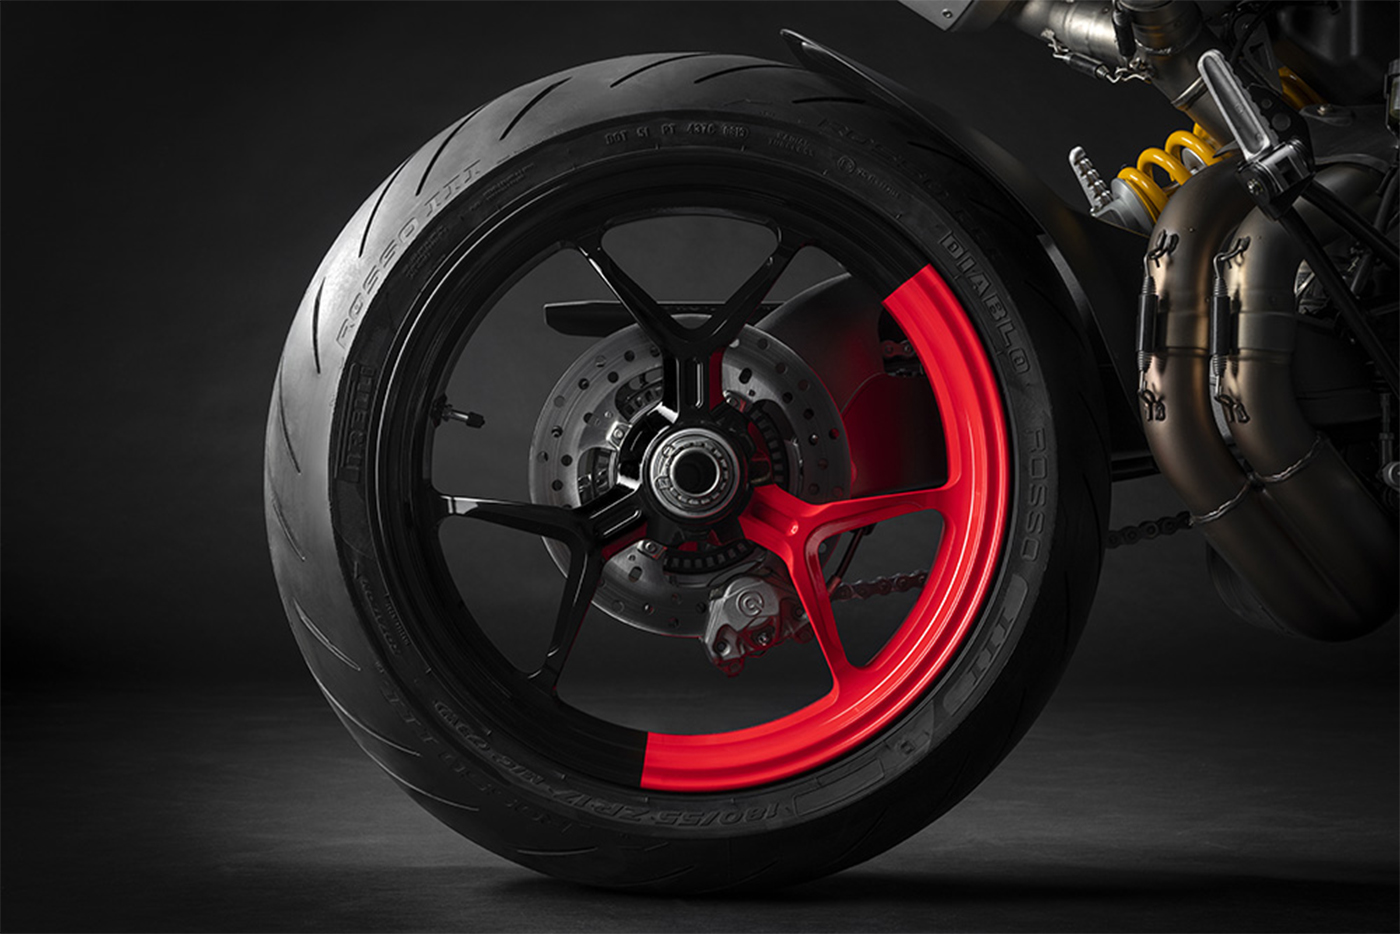 2020-ducati-hypermotard-950-rve-low-res-4.jpg